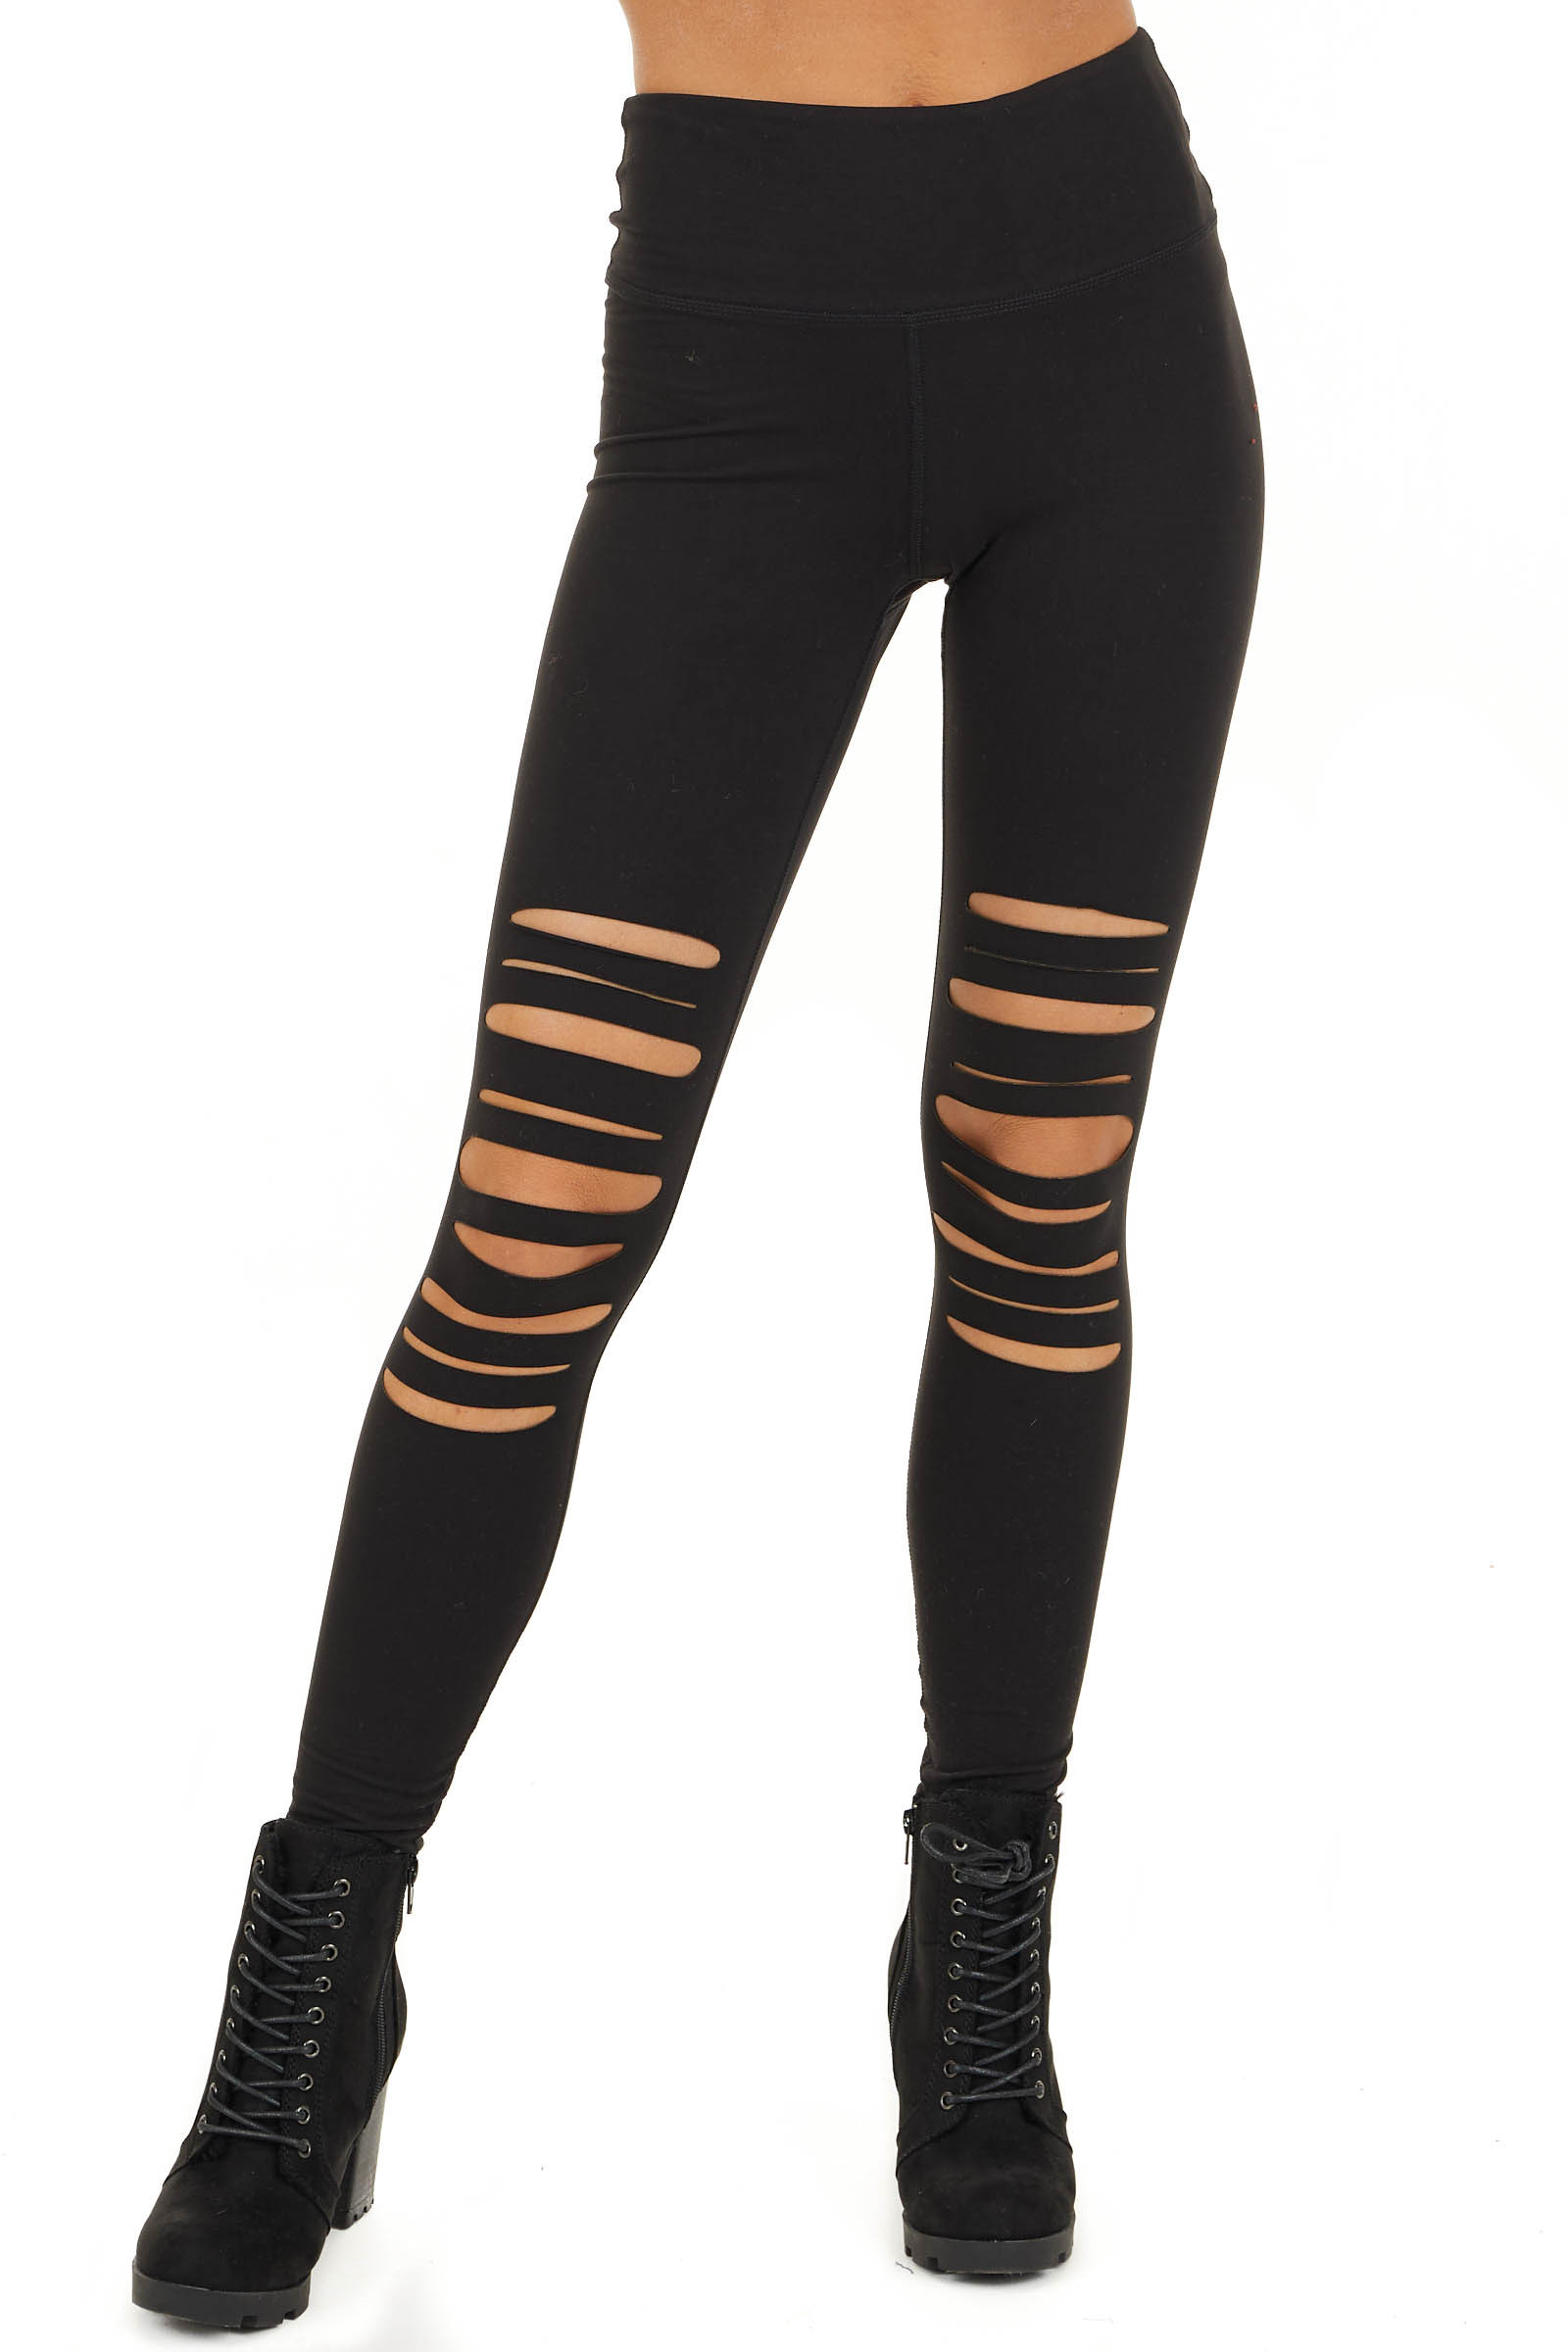 Black Solid Leggings with Laser Cutout Details front view